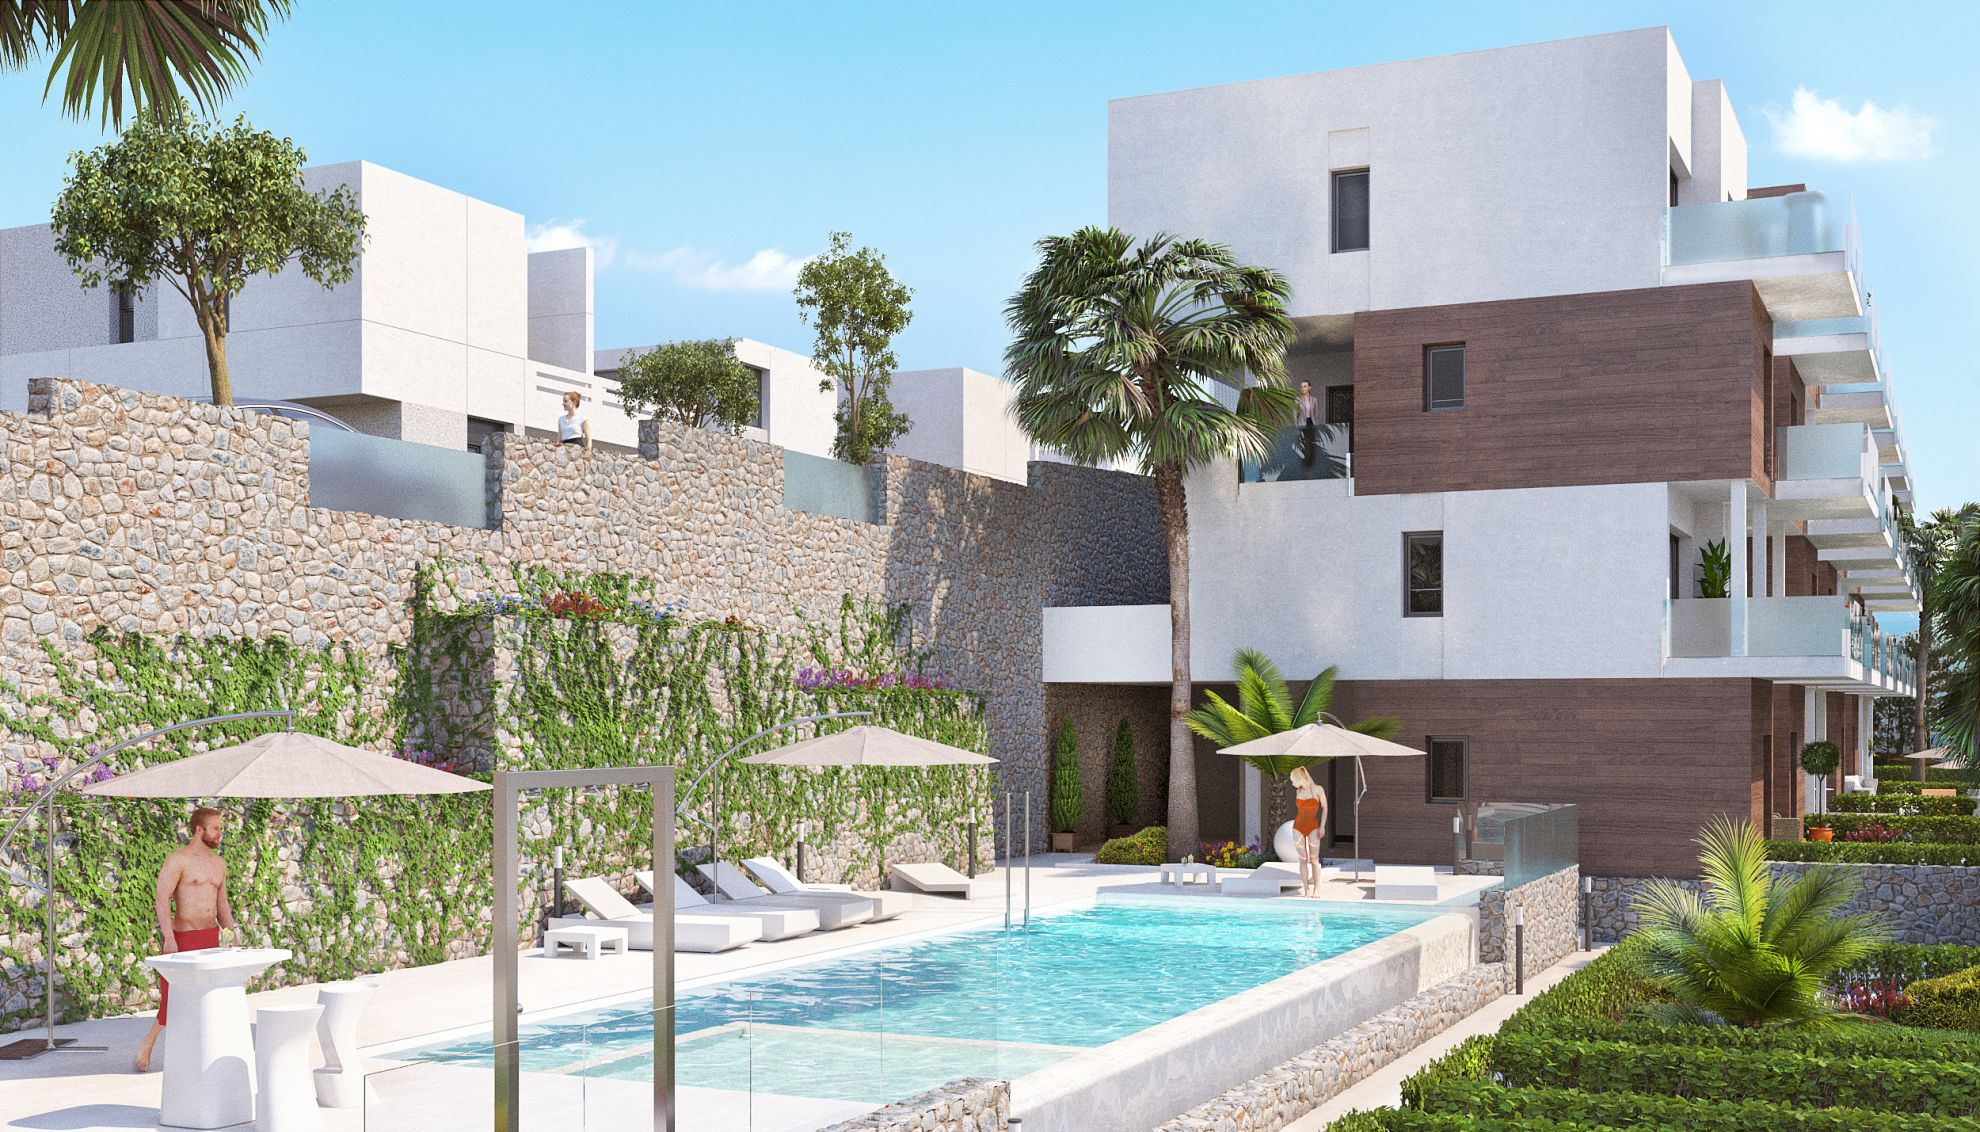 Apartments with 2 rooms and 2 bathrooms, in urbanization with swimming pool located in La Finca Golf. 2